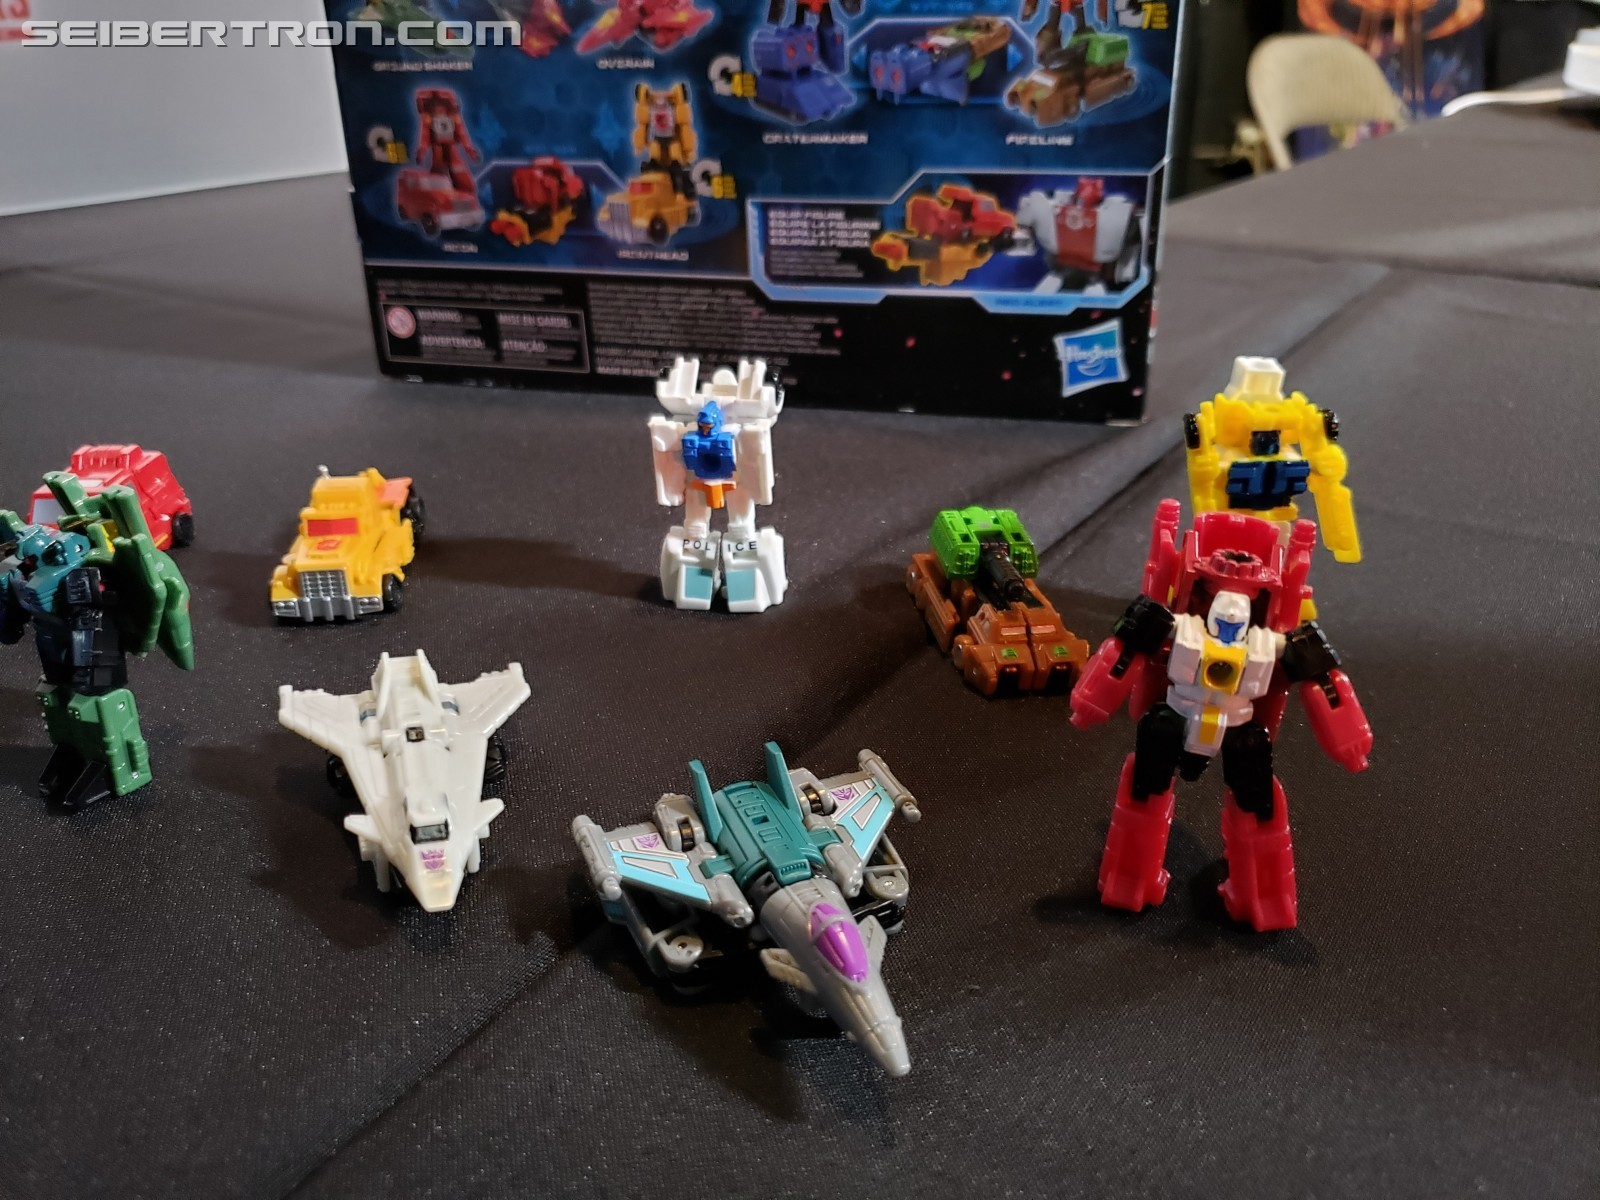 Transformers News: Hasbro Officially Reveals the Siege Target Exclusives at #SDCC2019 with Micromaster 10 Pack Names